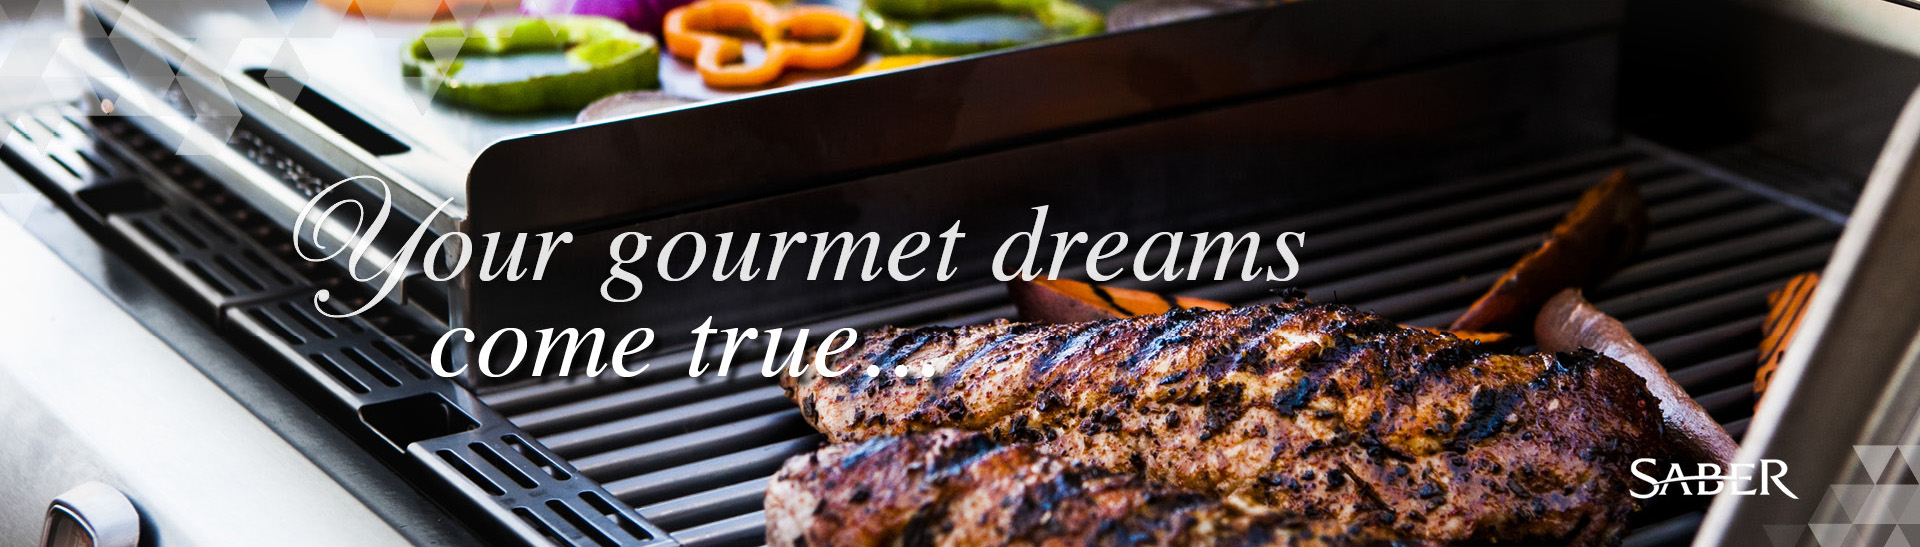 Your gourmet dreams come true